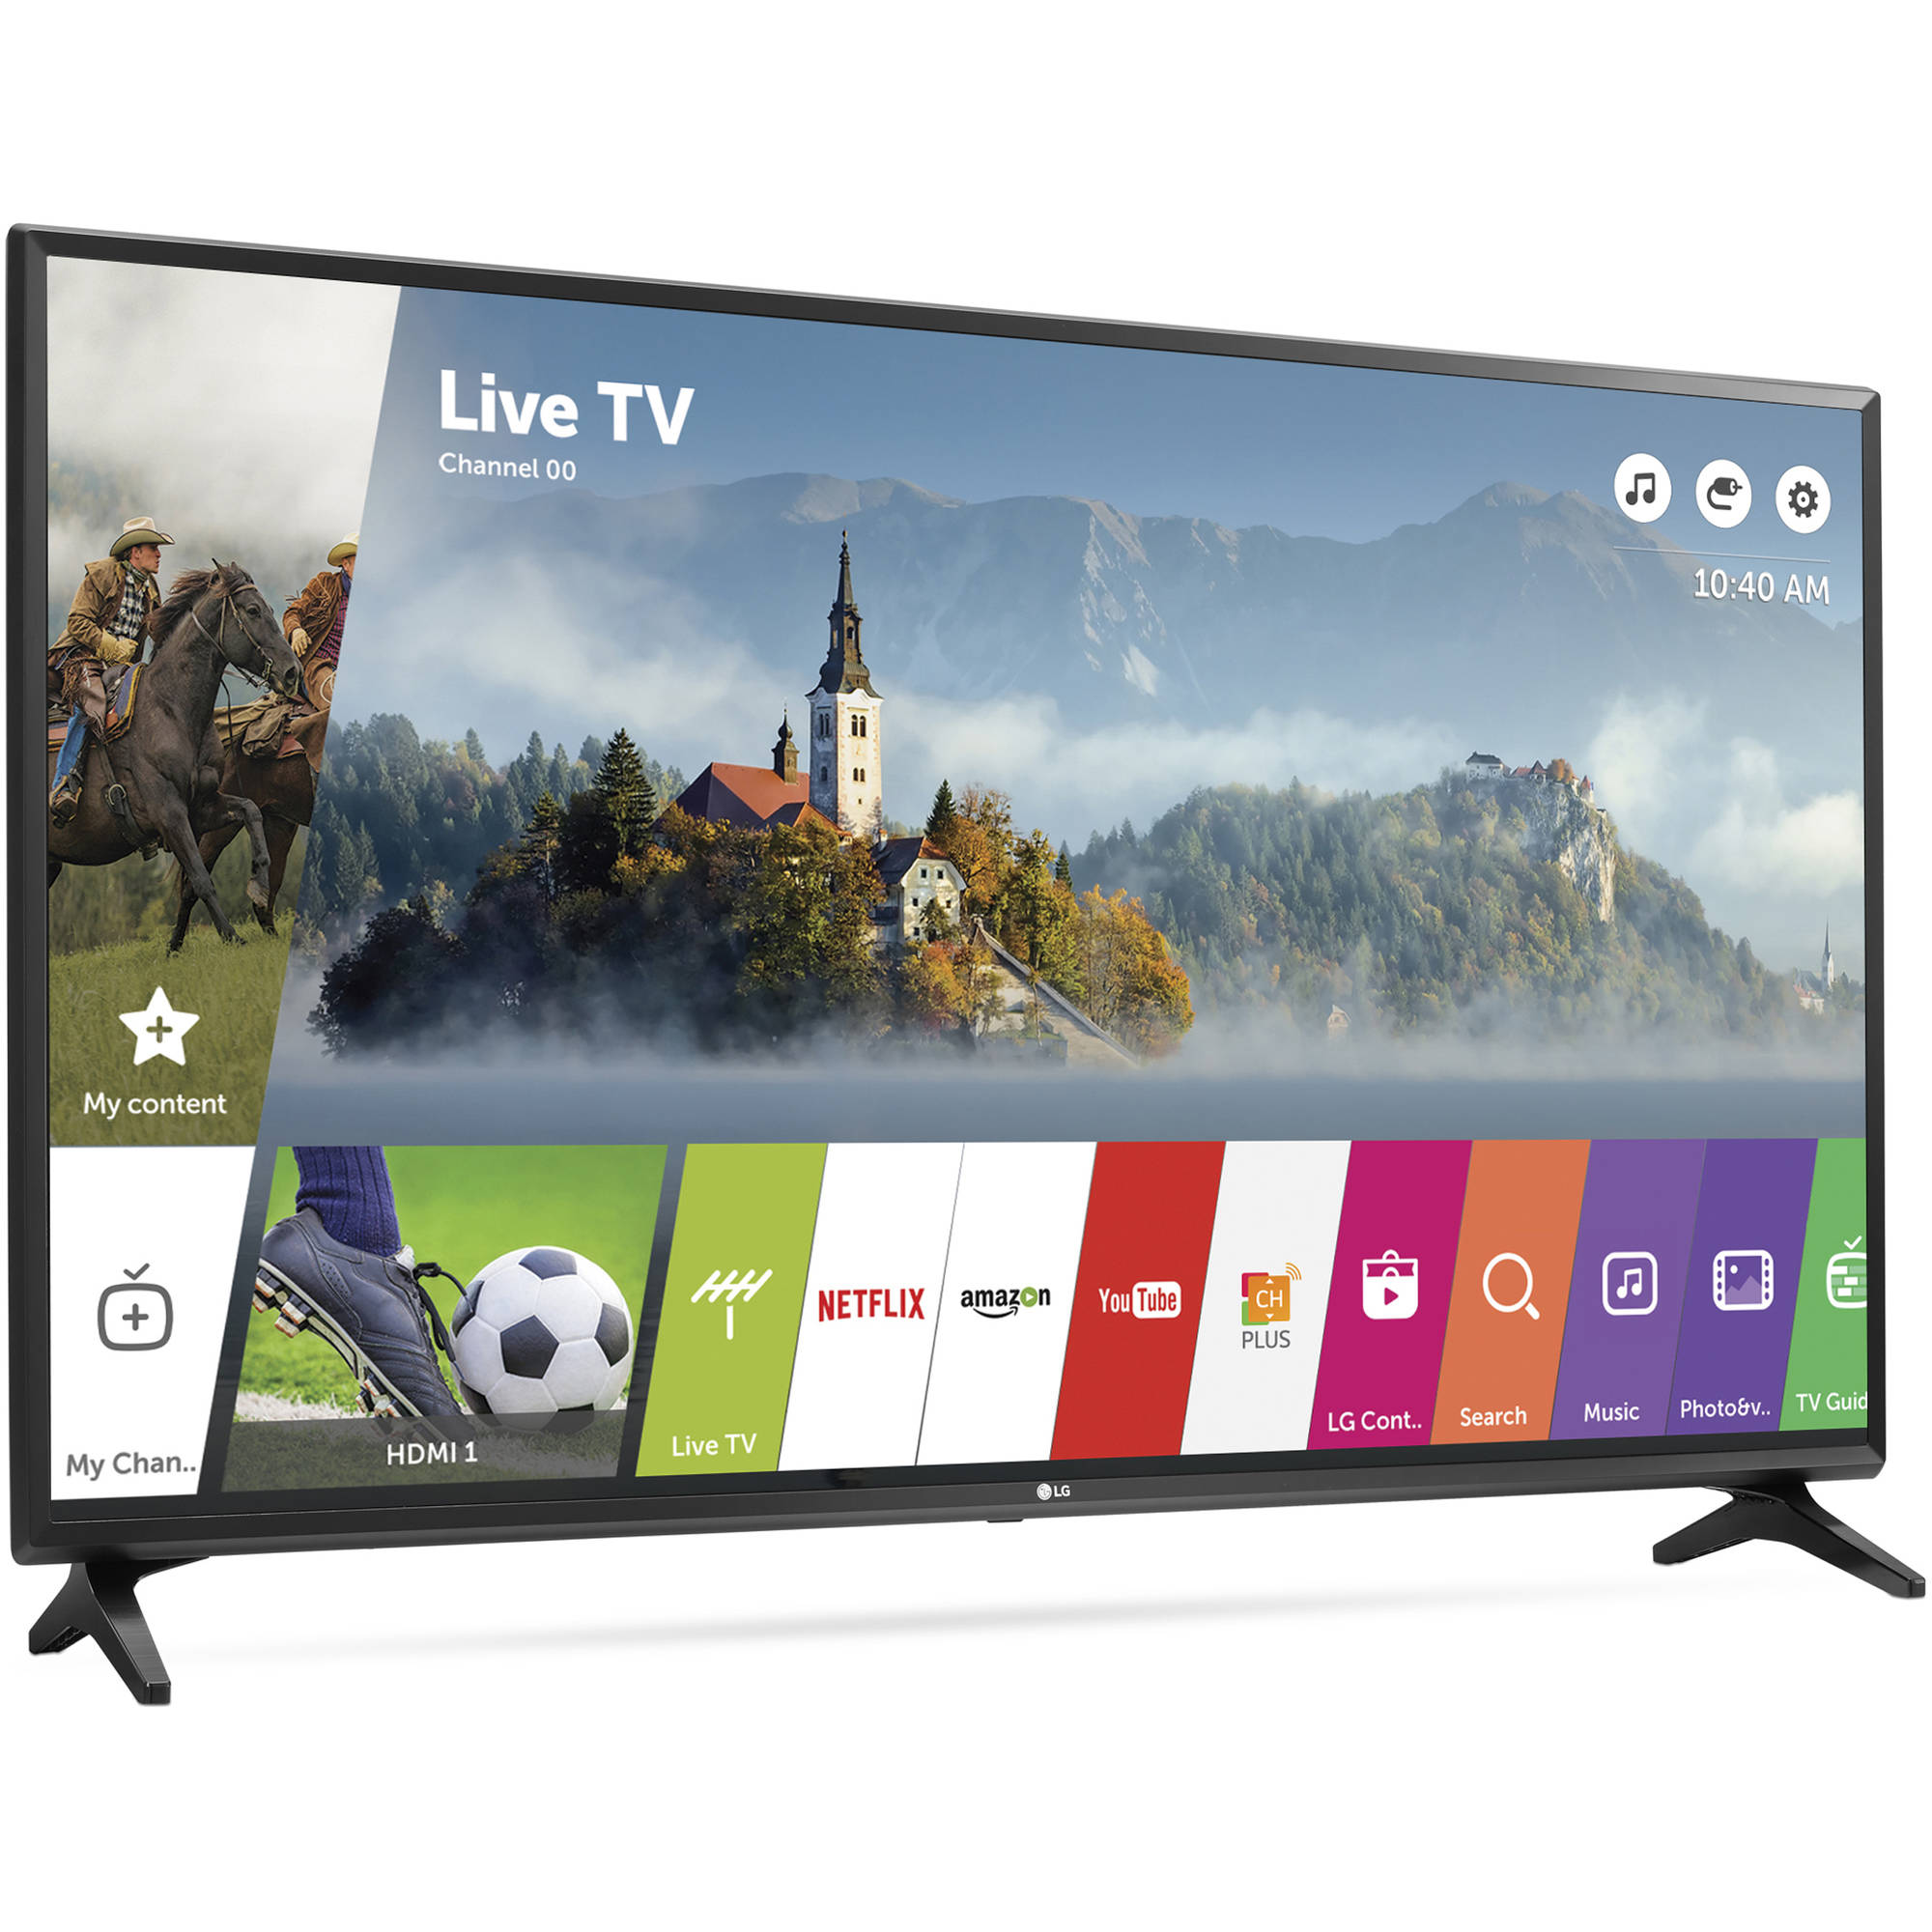 "LG 55"" FHD (1080P) Smart LED TV (55LJ5500)"